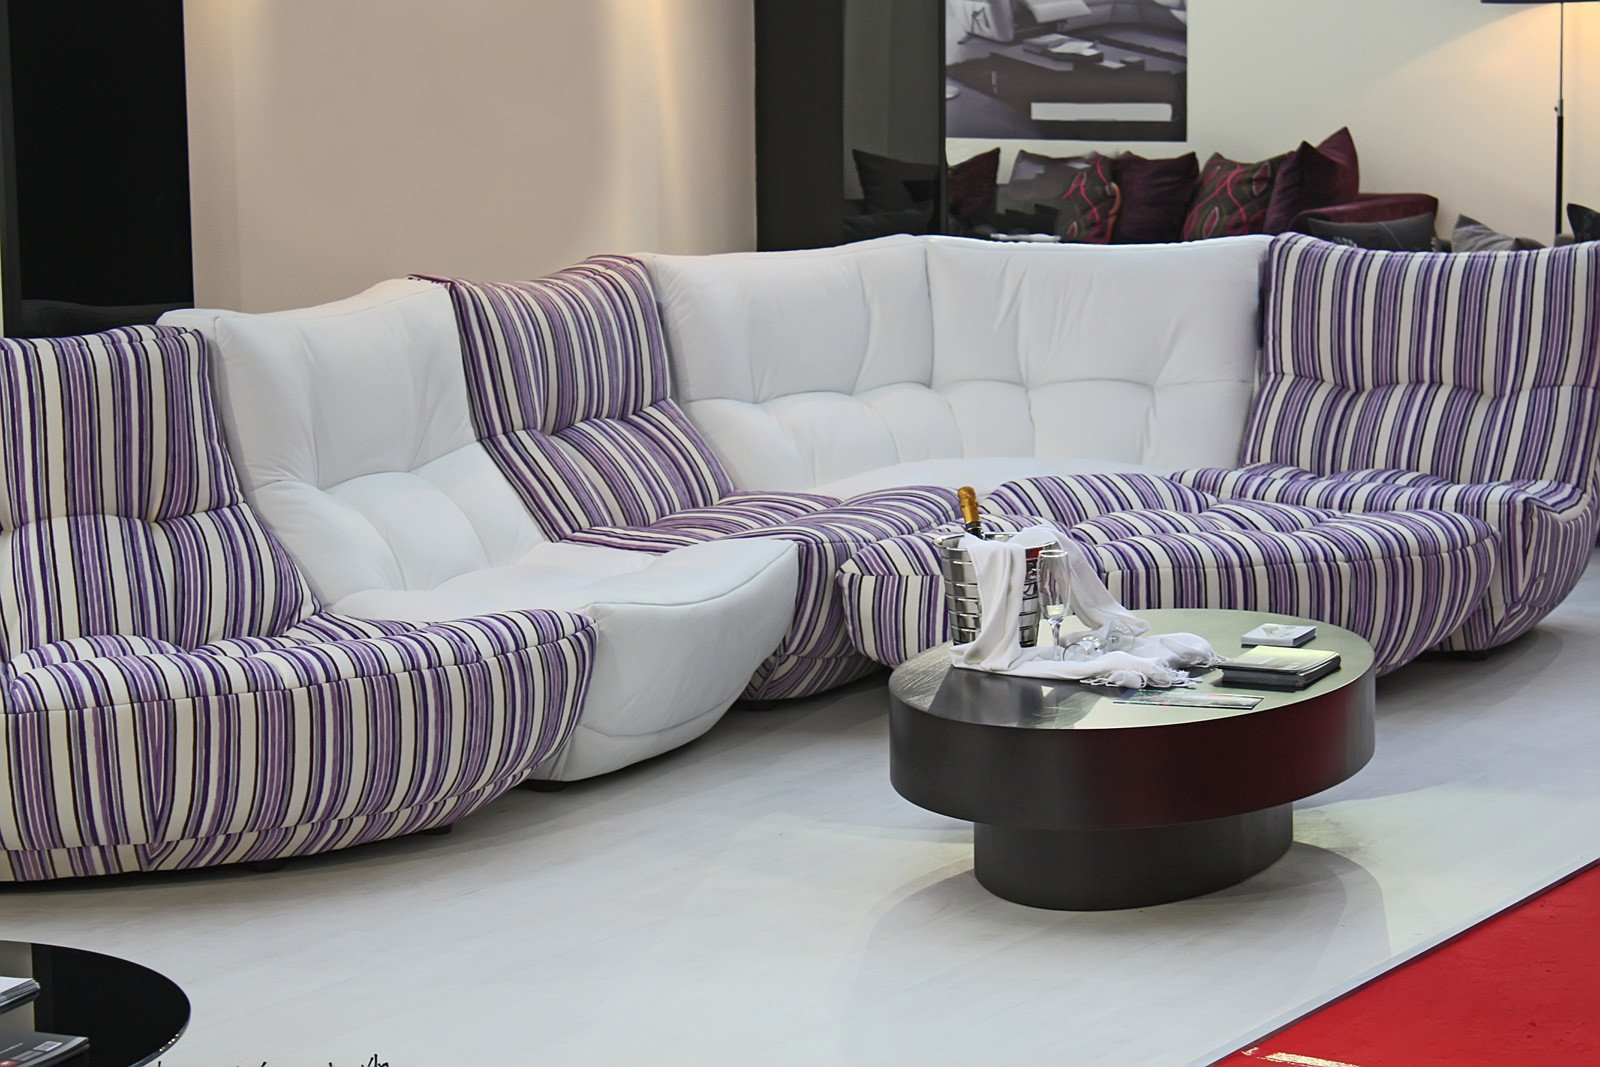 Comfortable Couches Living Room New Most fortable sofas